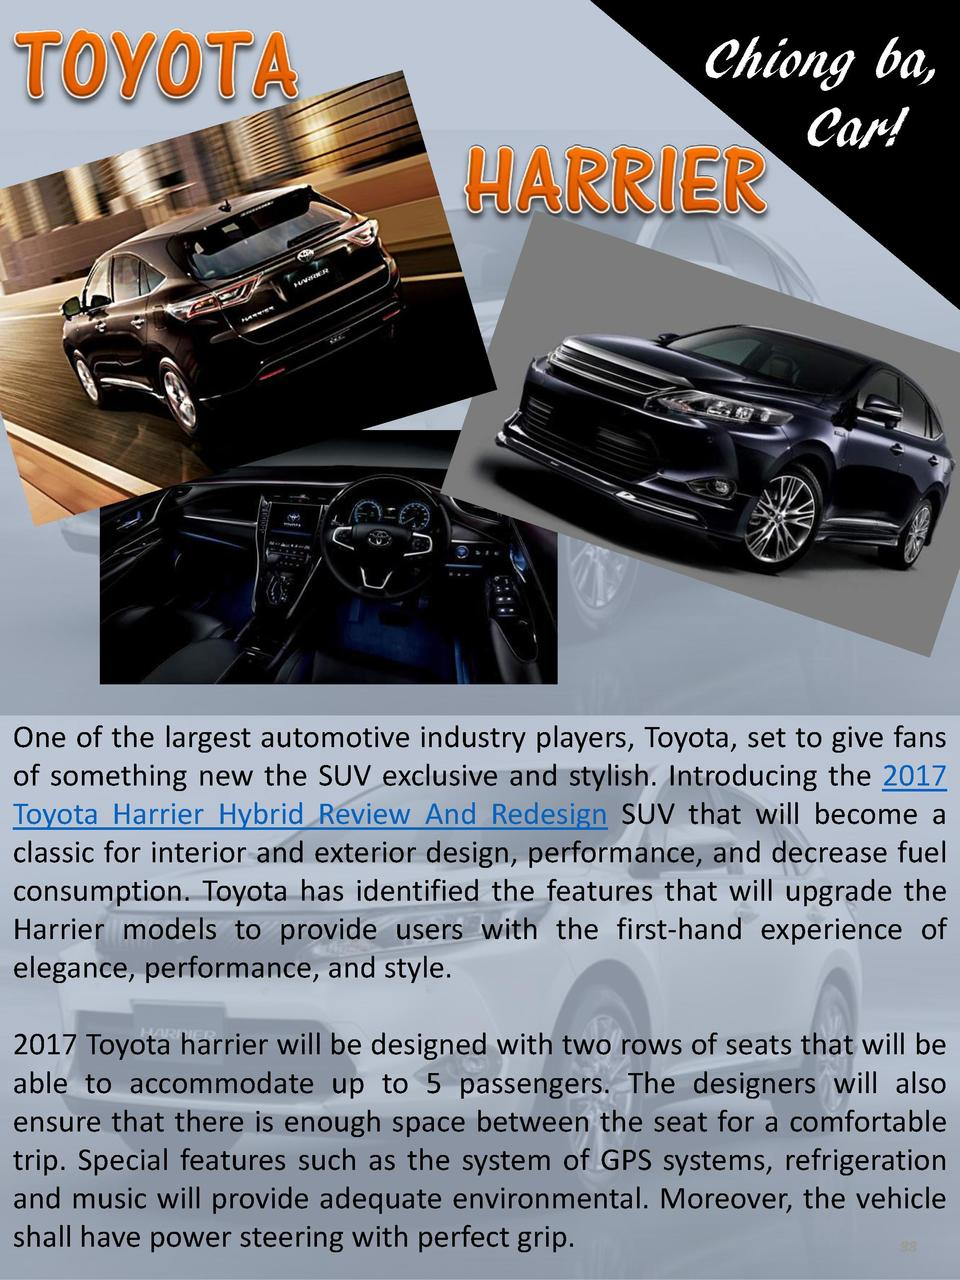 Chiong ba, Car   One of the largest automotive industry players, Toyota, set to give fans of something new the SUV exclusi...